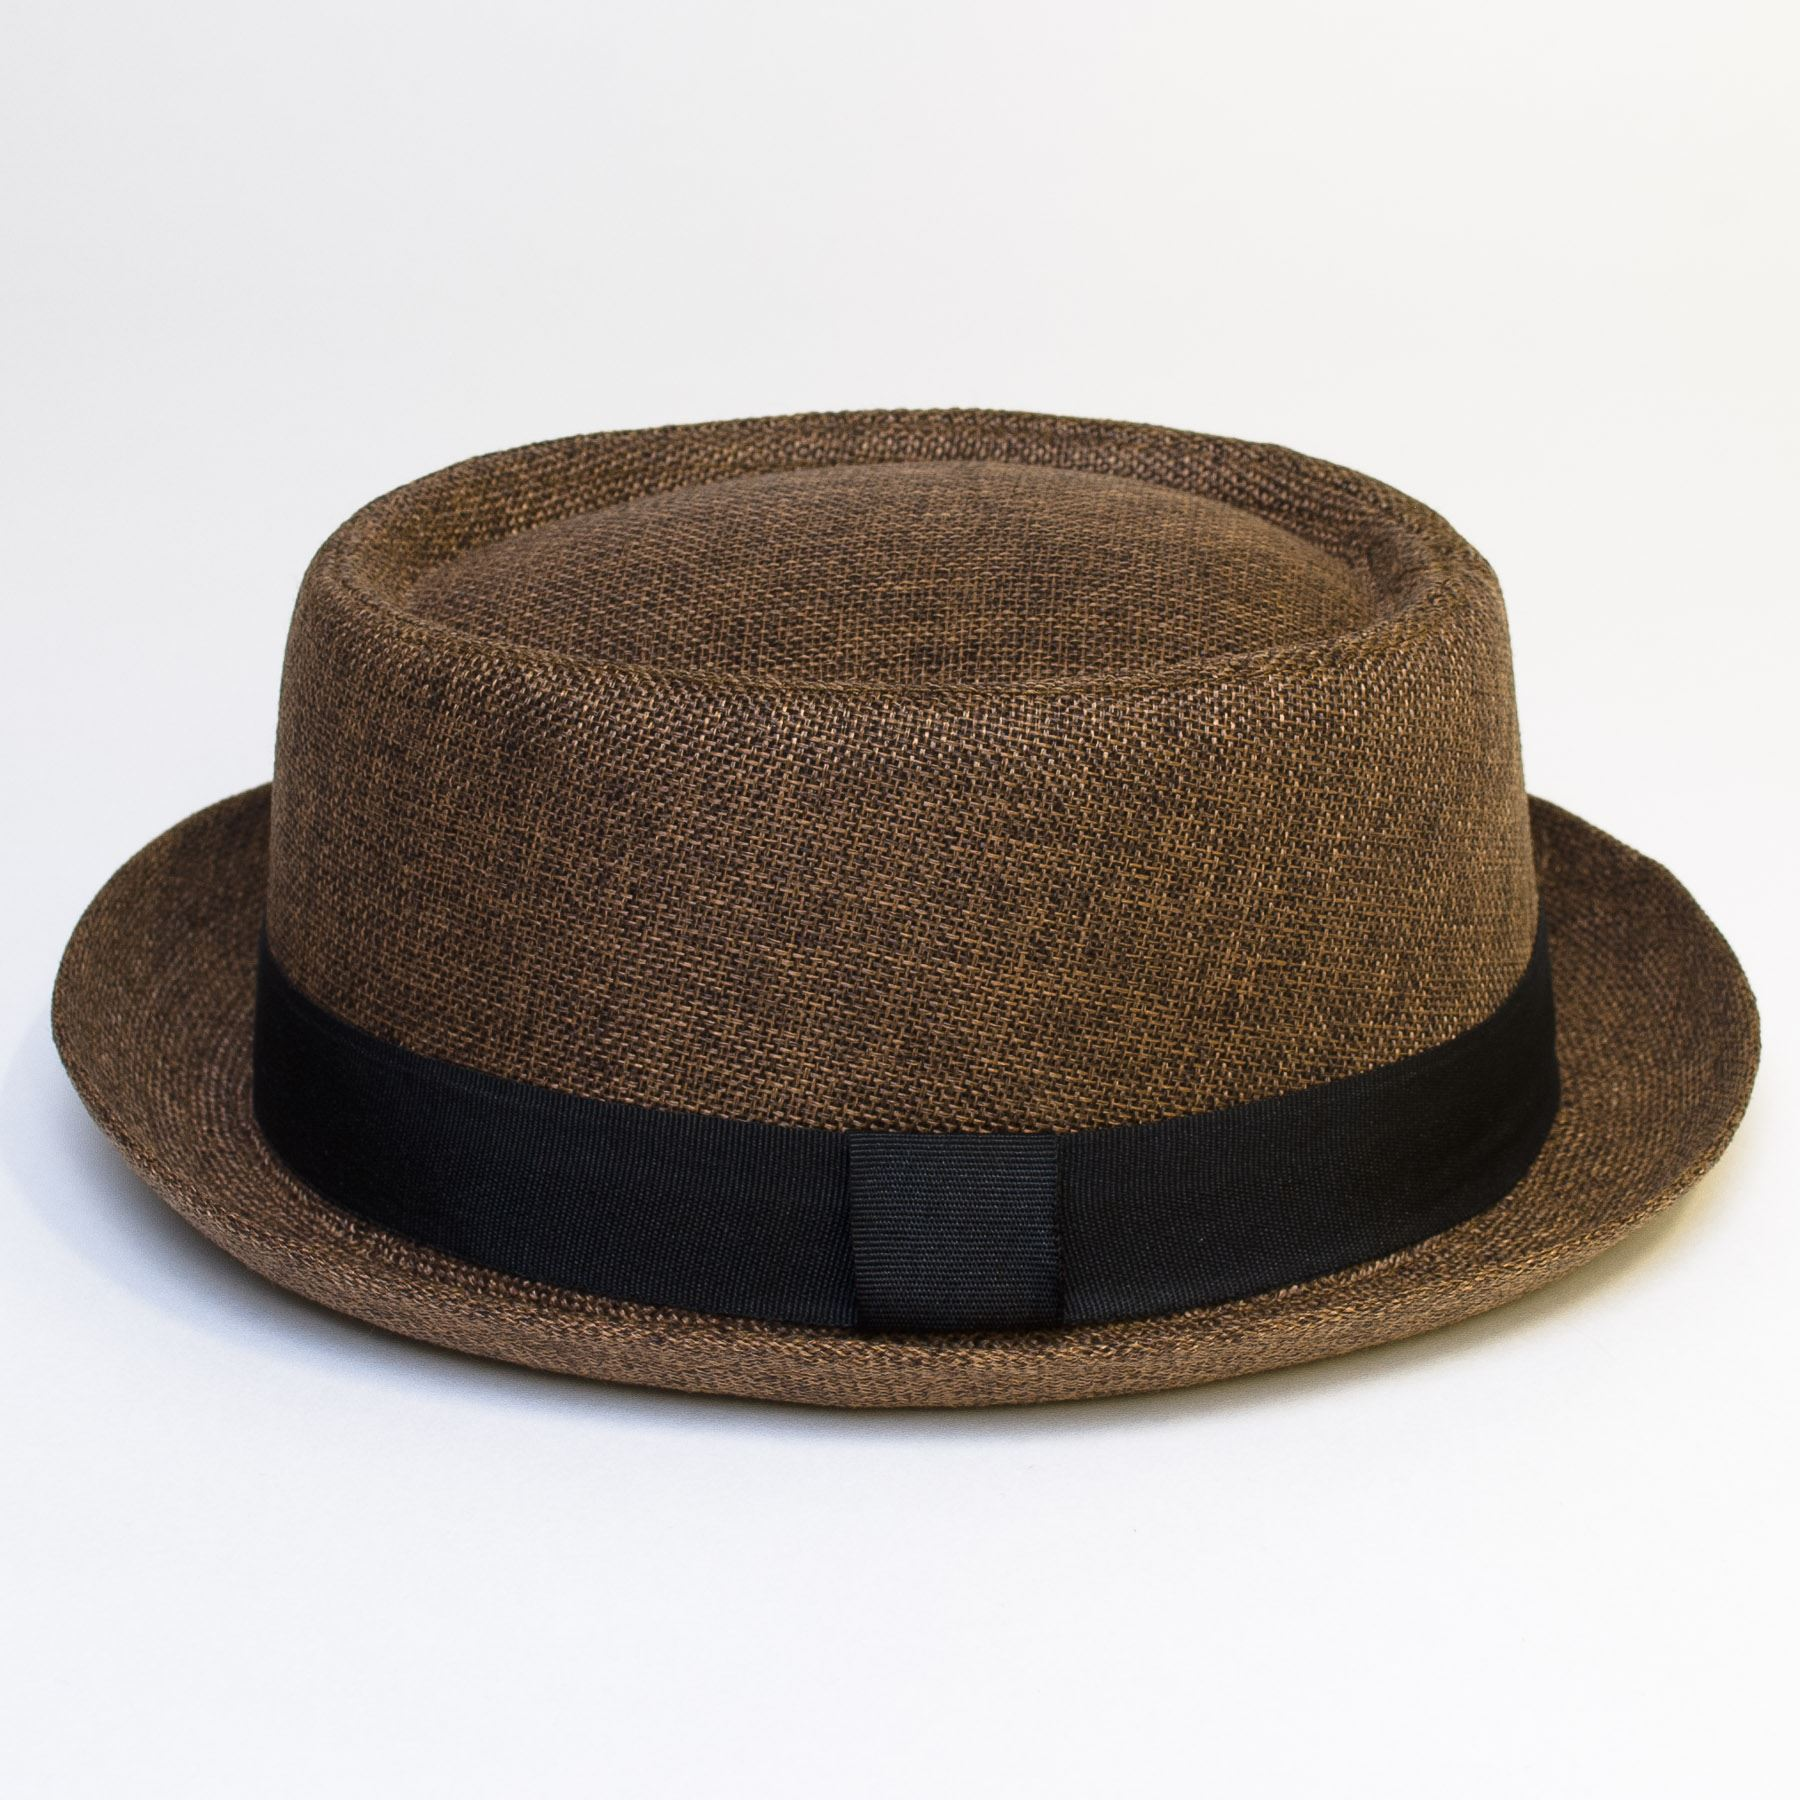 Pork-Pie-Hat-with-Black-Grosgrain-Band thumbnail 15